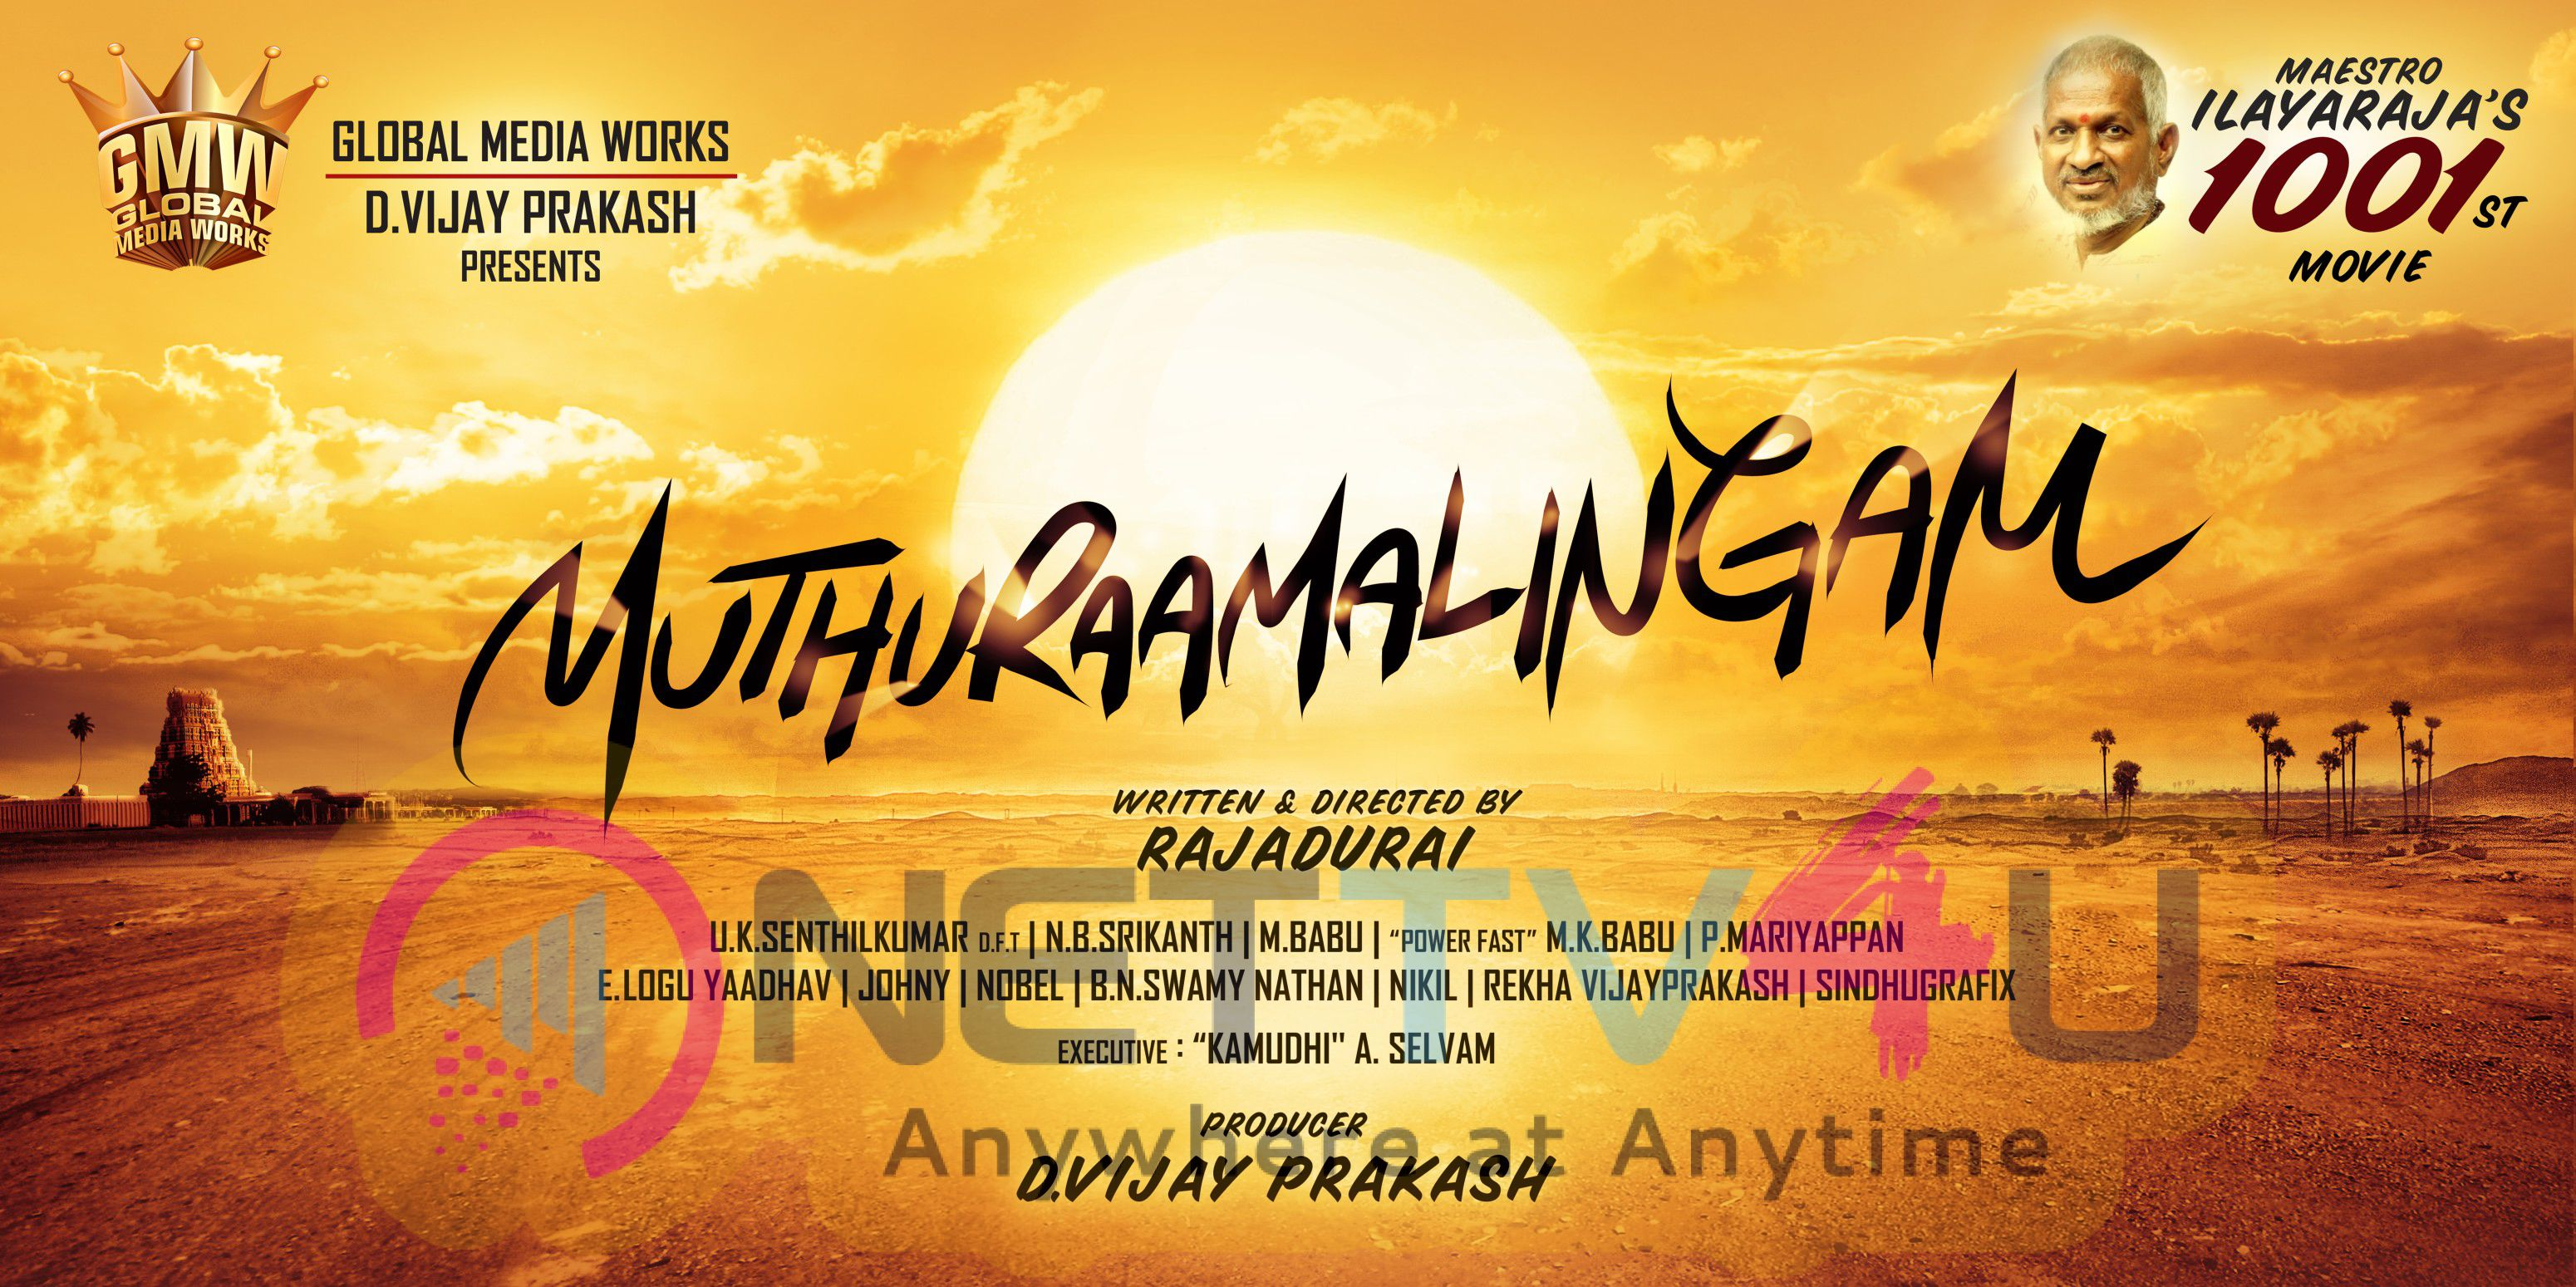 Muthuraamalingam Tamil Movie Poster